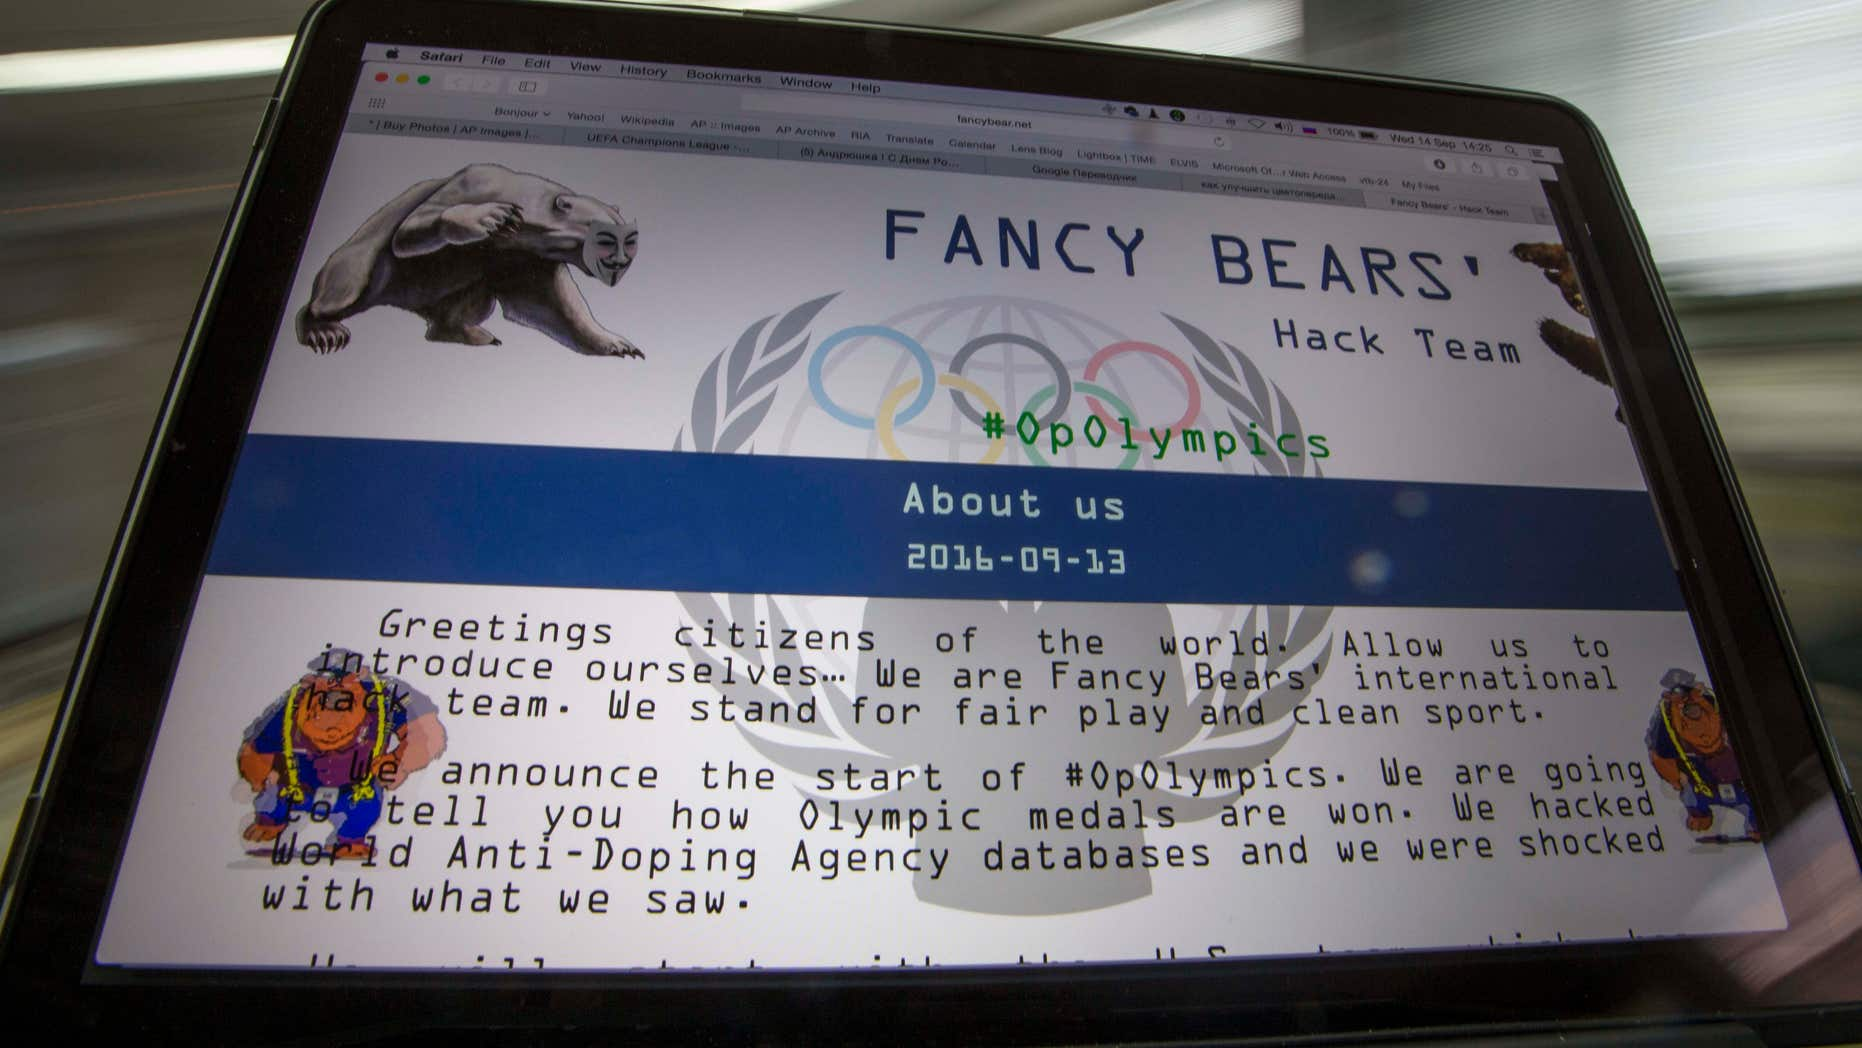 Sept. 14, 2016: A screenshot of the Fancy Bears website fancybear.net seen on a computes screen in Moscow, Russia.